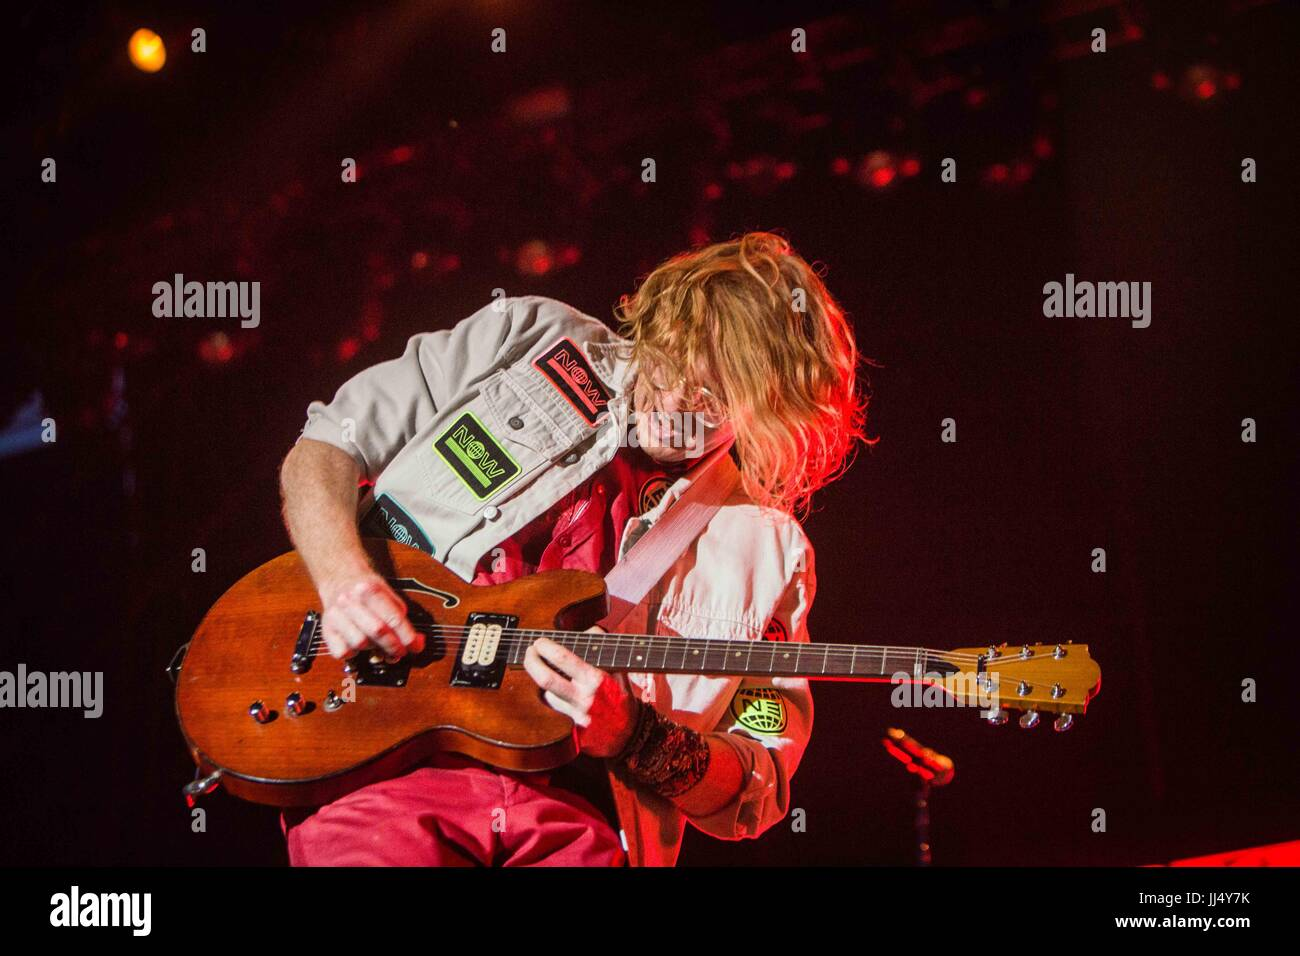 Milan, Italy. 17th July, 2017. Richard Reed Parry of the canadian indie rock band Arcade Fire pictured on stage - Stock Image